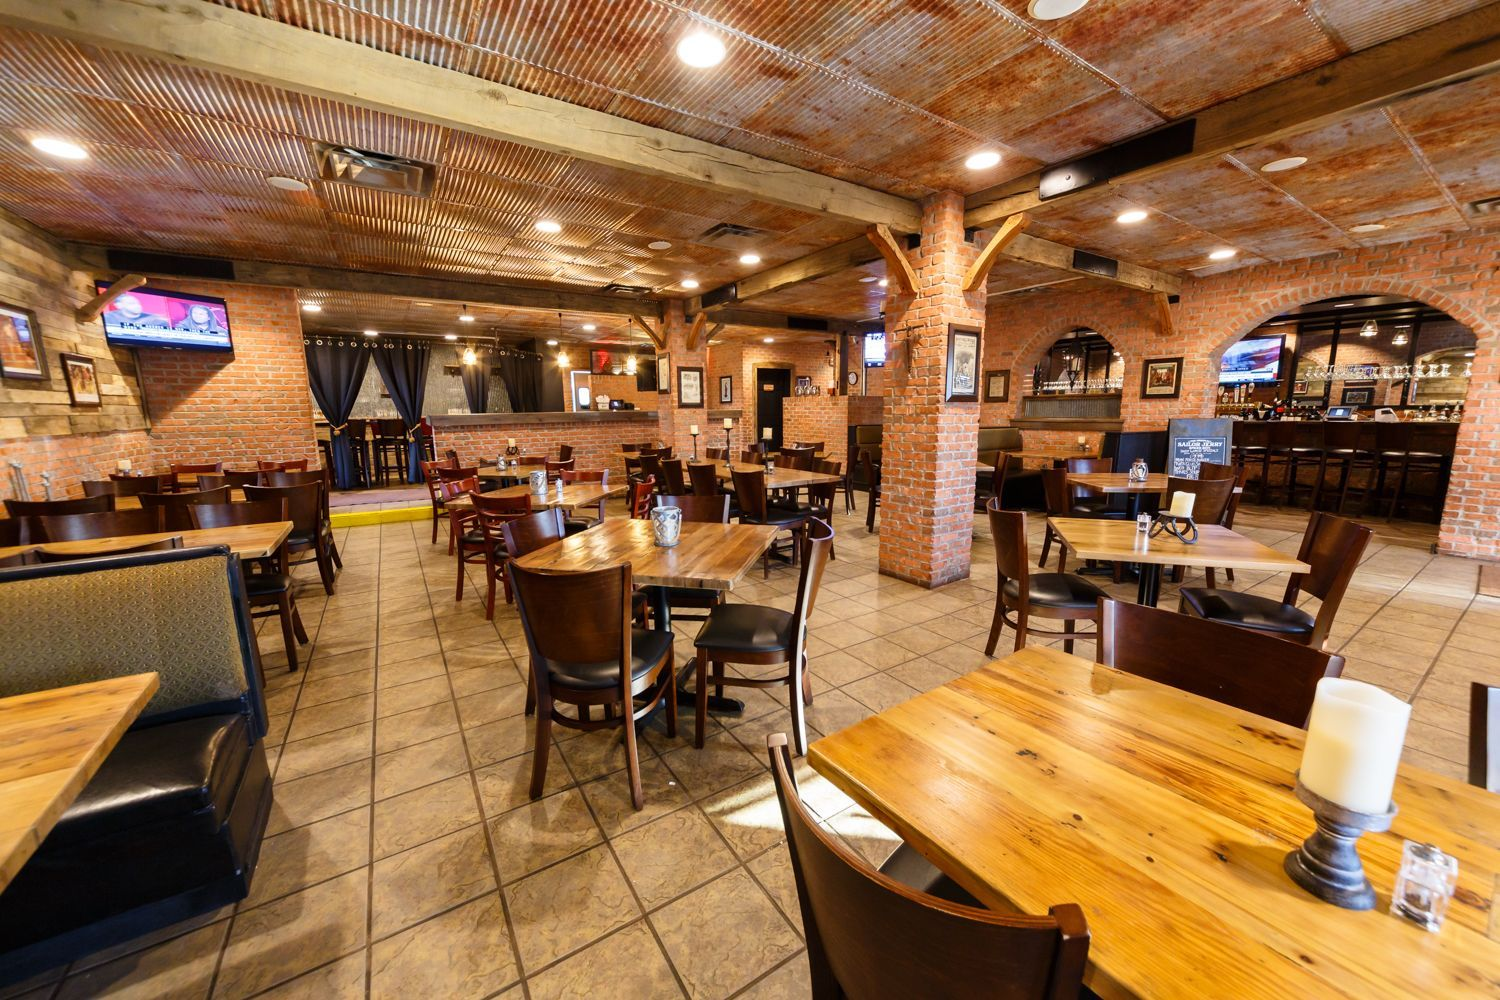 Old Tin Roof Vinyl Ceiling Tile From Our Legacy Series Featured At The Blacksmith Bar Grill It S Rus Finishing Basement Basement Renovations Basement Layout